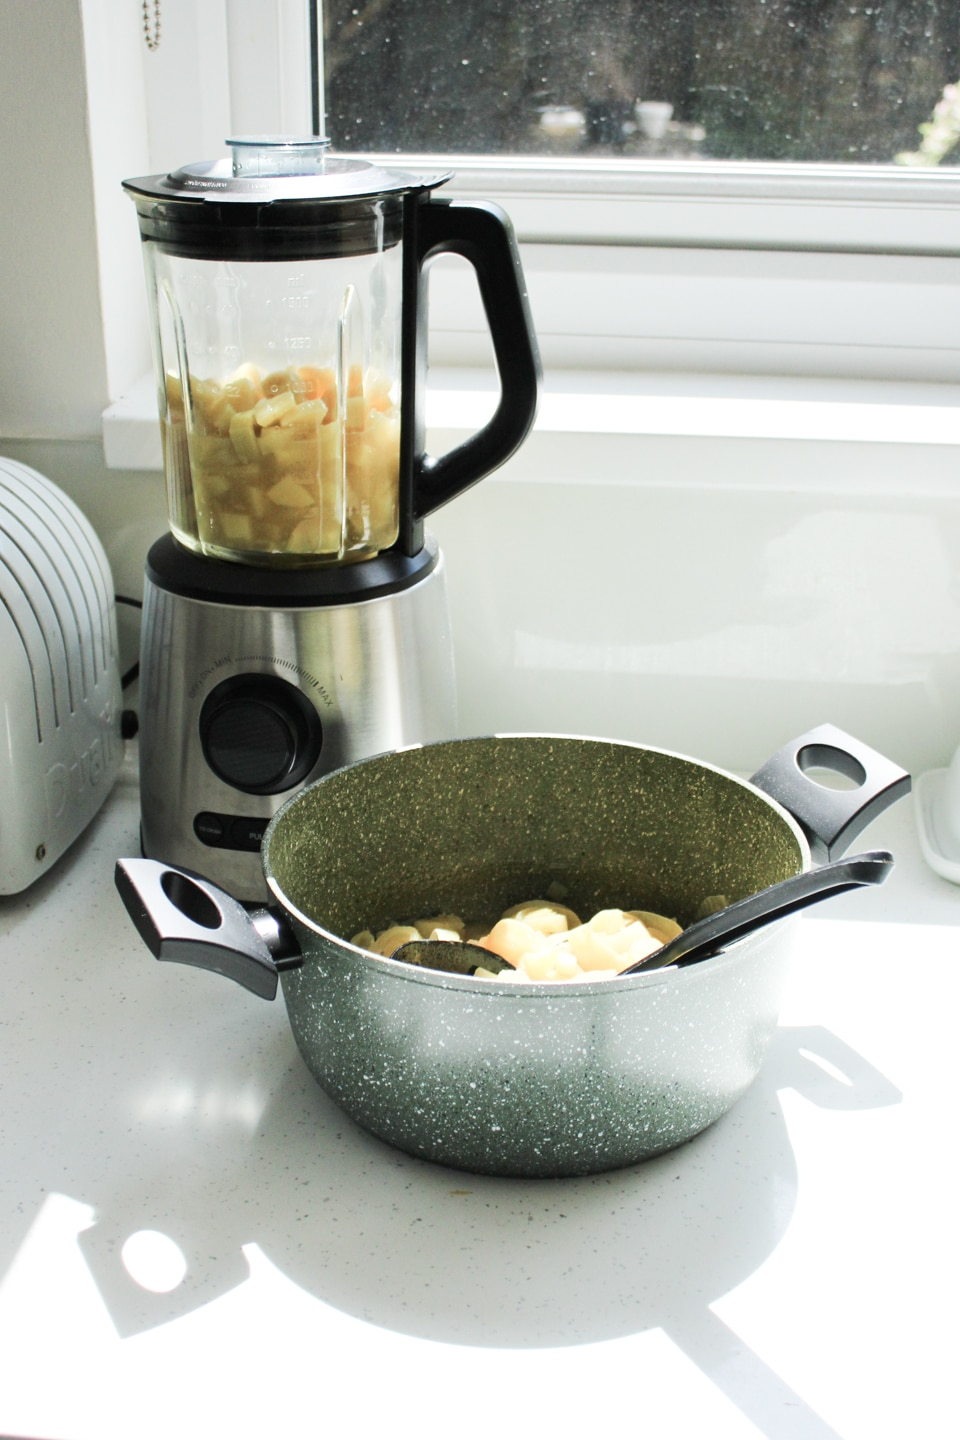 Blending leek and potato soup